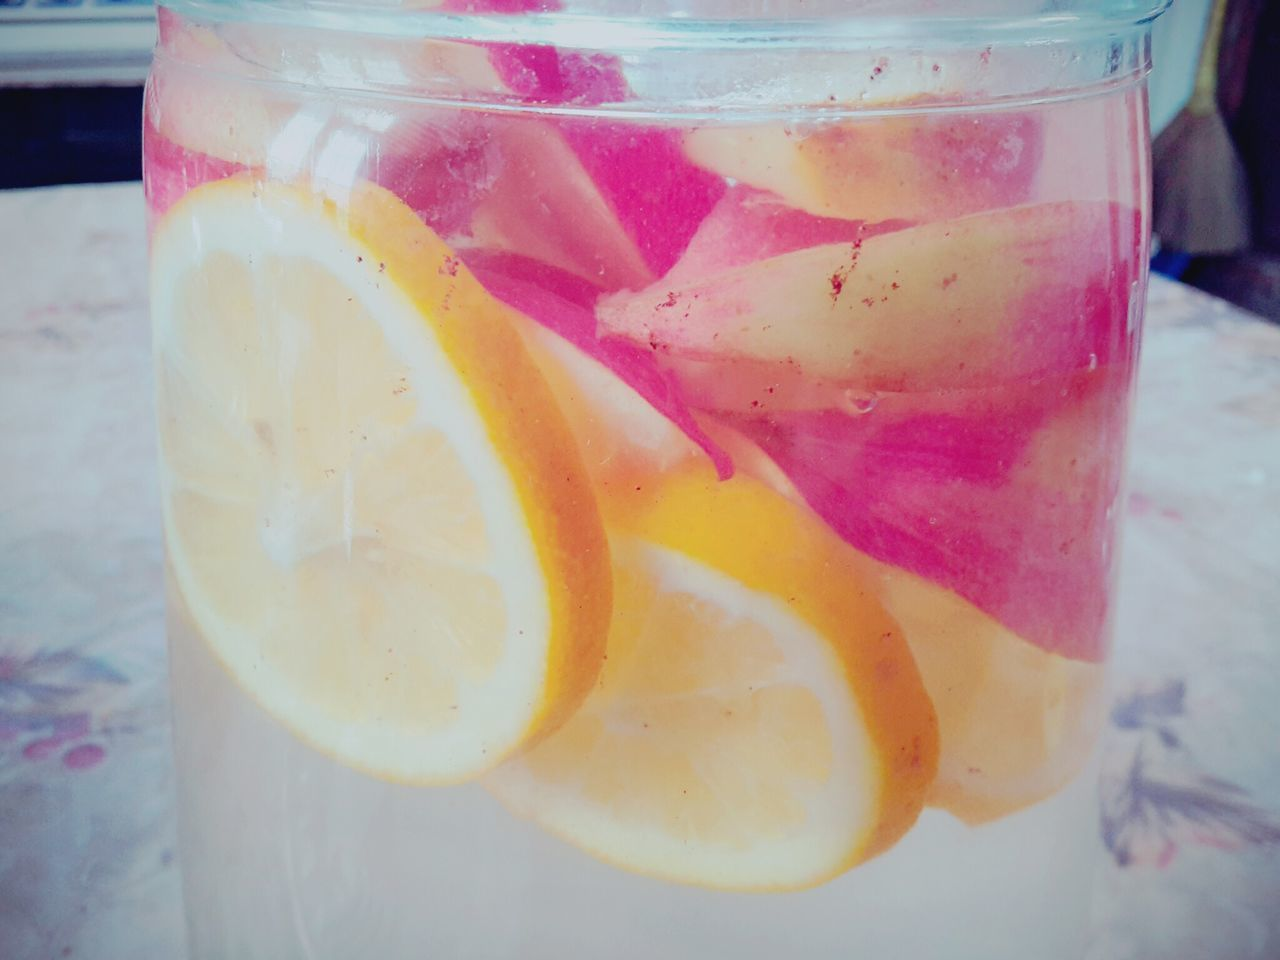 food and drink, drink, slice, drinking glass, refreshment, freshness, close-up, no people, fruit, lemonade, indoors, healthy eating, lime, lemon soda, cold temperature, food, blended drink, day, tonic water, ready-to-eat